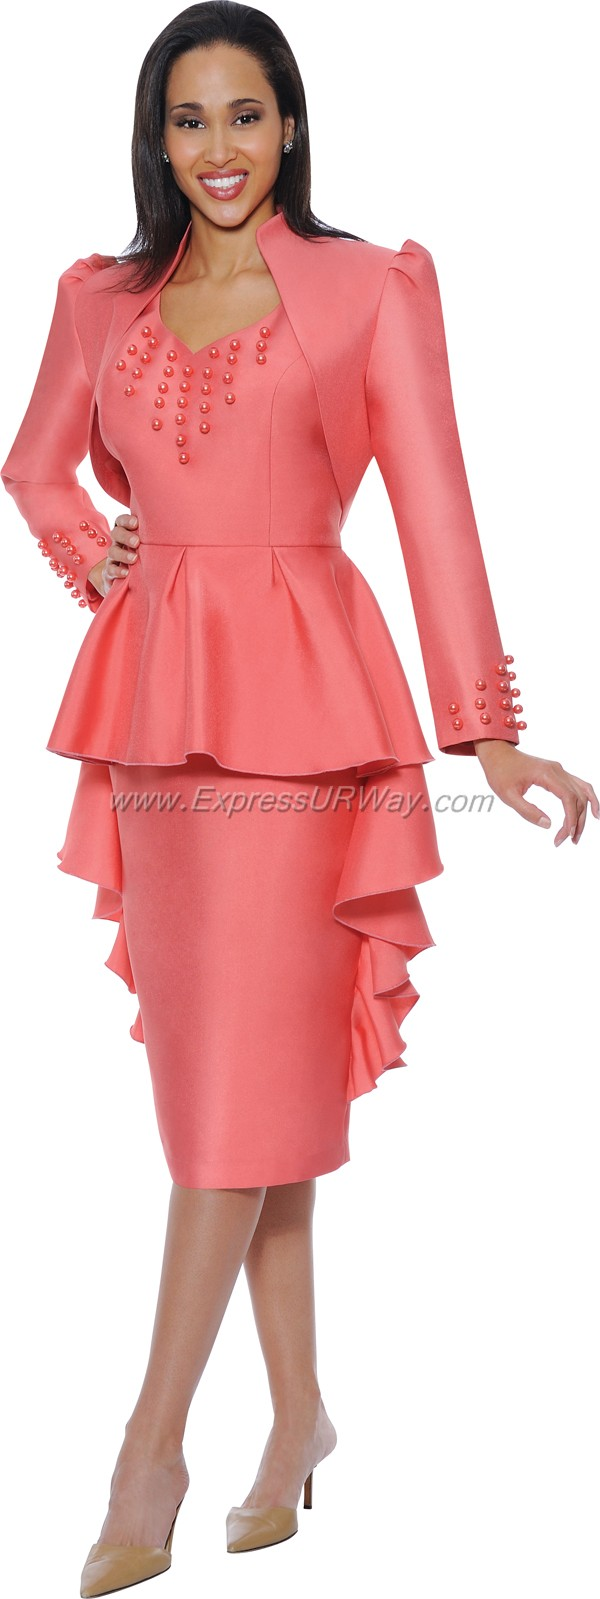 ExpressURWay has the widest selection of women's skirt suits and pant suits with plus size women's suits and church suits in a variety of attractive styles and colors - featured at pav-testcode.tk